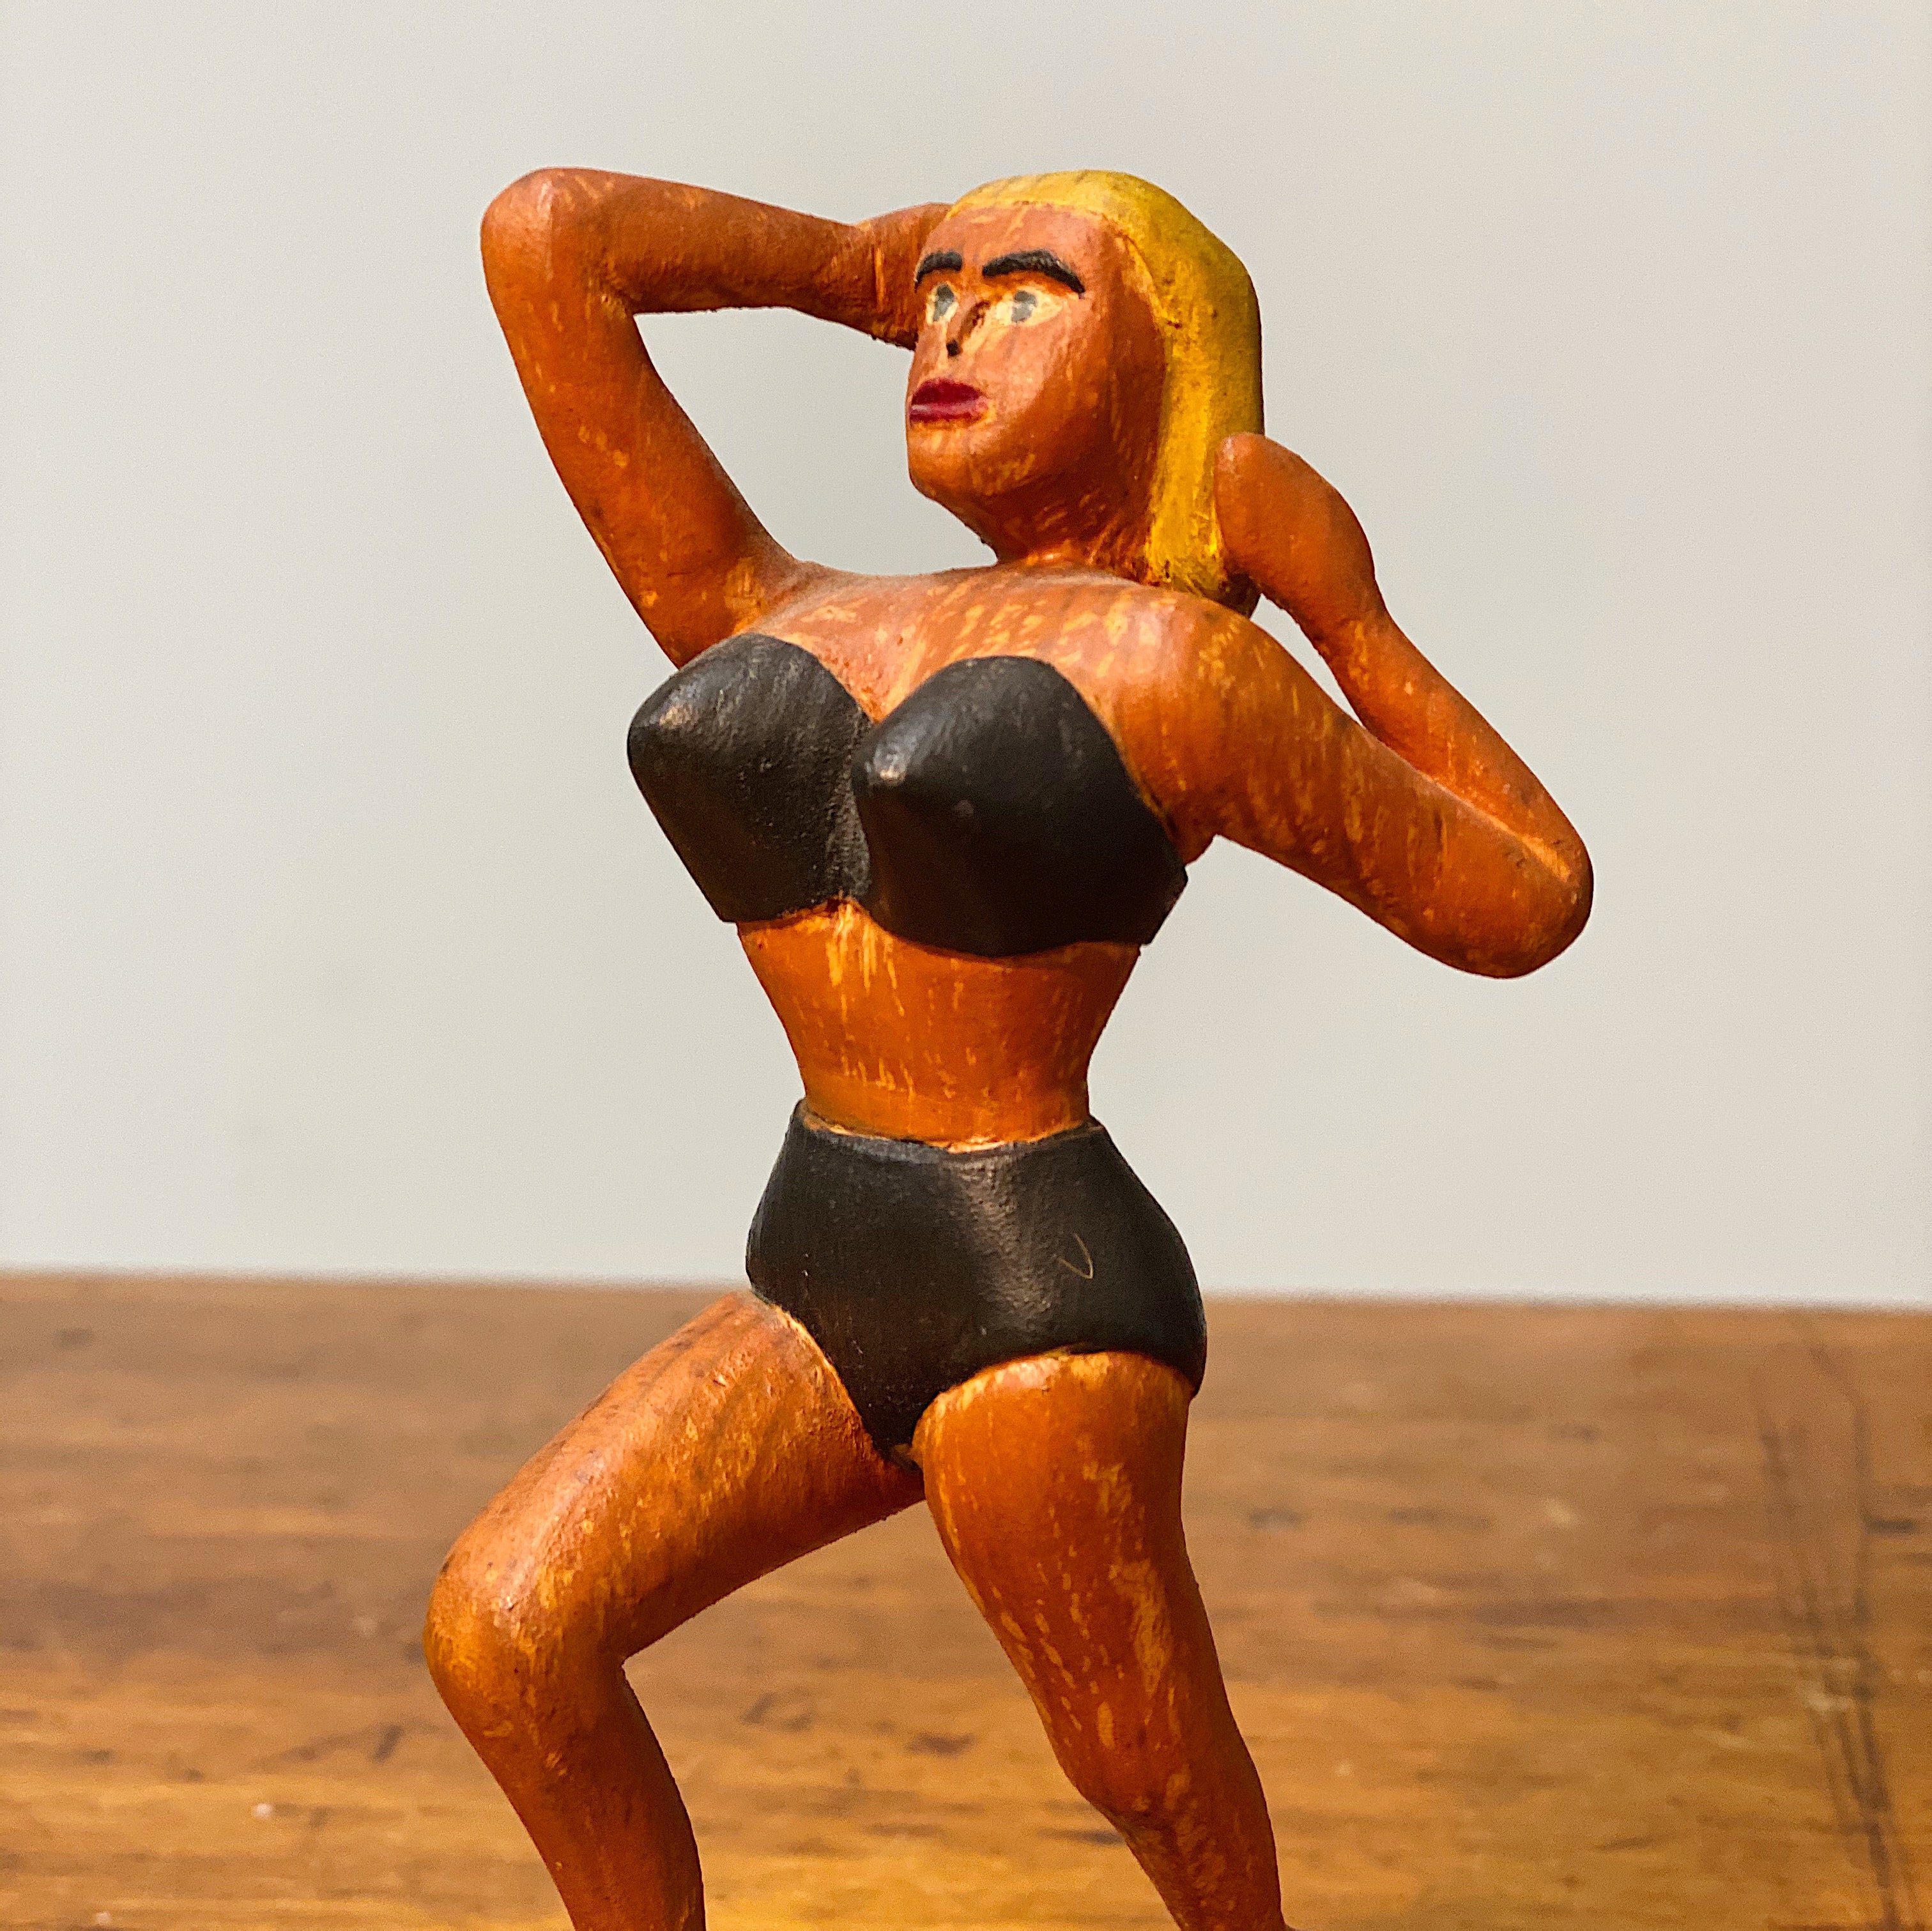 "1950s Folk Art Wood Carving of Blonde Bombshell in Bikini - Vintage Underground Art - 7"" Tall - Mystery Artist - Rare Sculpture Woman - Sexy"